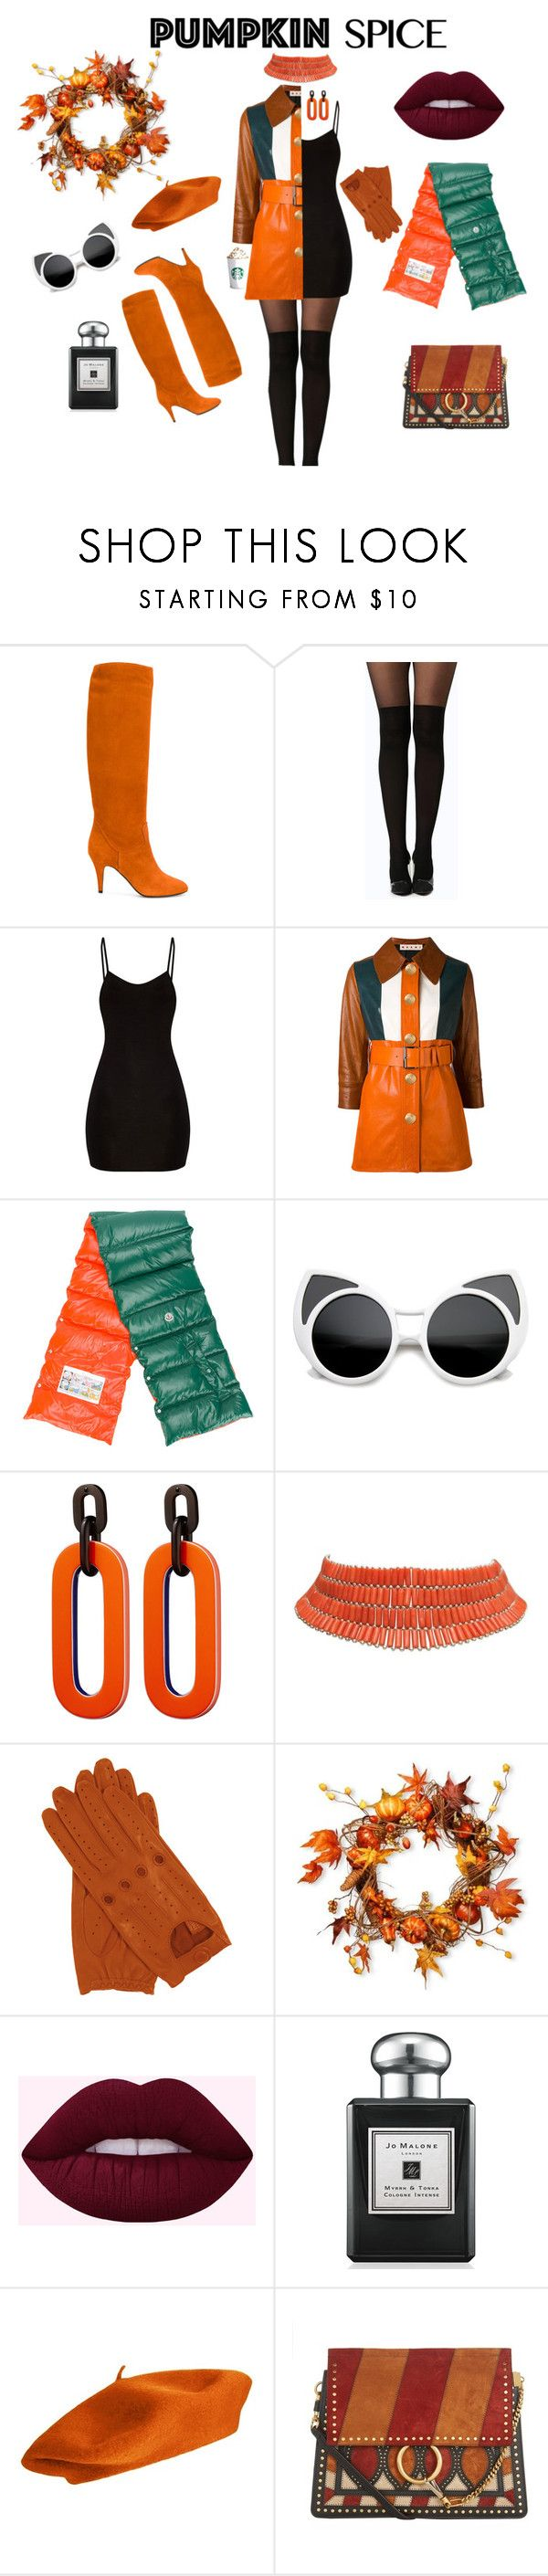 Autumn mood by wildpatchouli on Polyvore featuring Marni, Casadei, Chloé, Moncler, Jo Malone, National Tree Company, outfit, orange and pumpkinspice